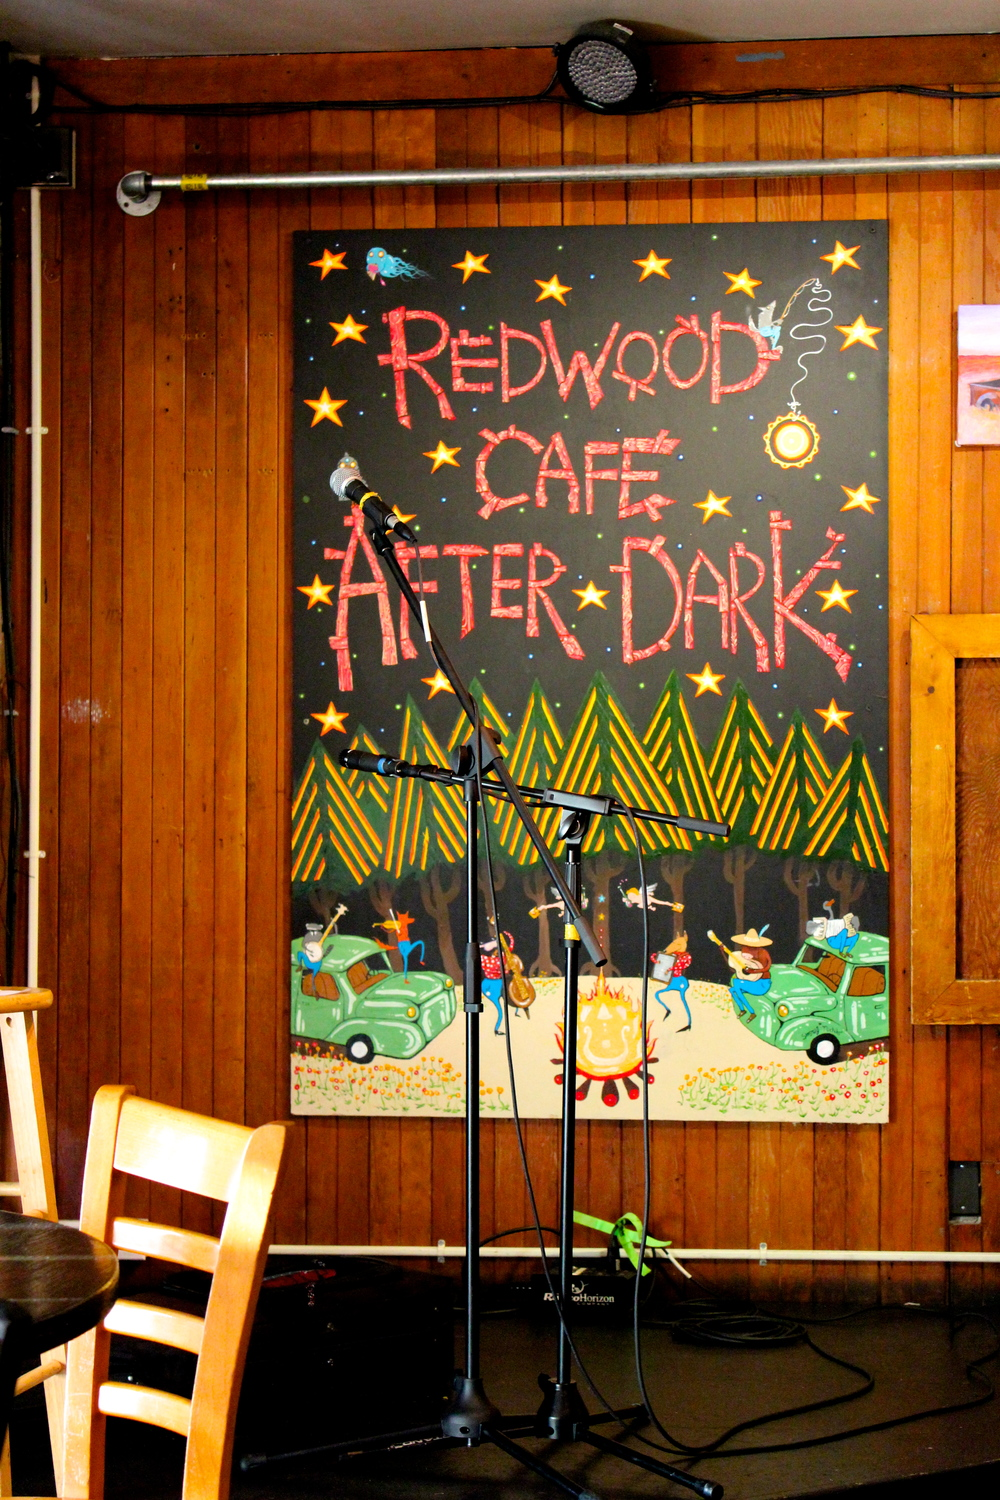 STAR // Sara Wildman Redwood Cafe puts on After Dark Open Mic night for the community to enjoy.